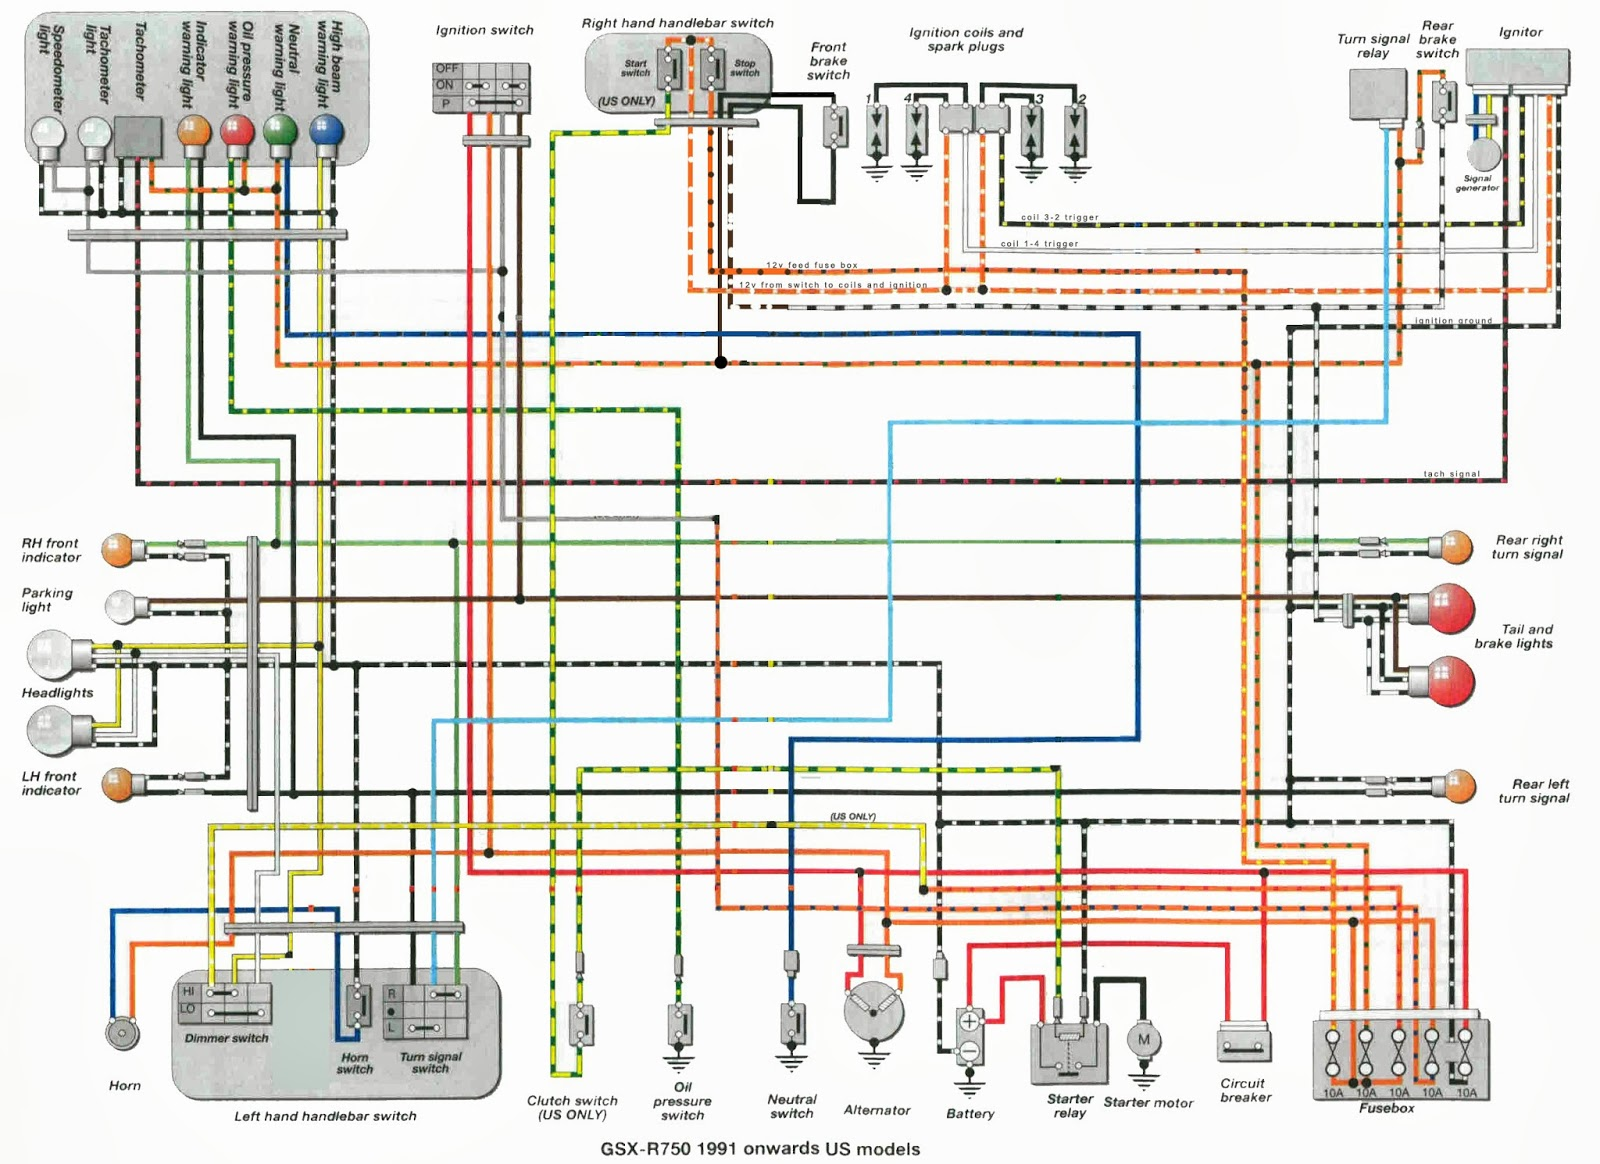 1995 Gsxr 1100 Wiring Diagram ( Simple Electronic Circuits ) \u2022 Suzuki  Bandit 1200 Wiring Diagram 1993 Suzuki Gsxr 1100 Wiring Diagram